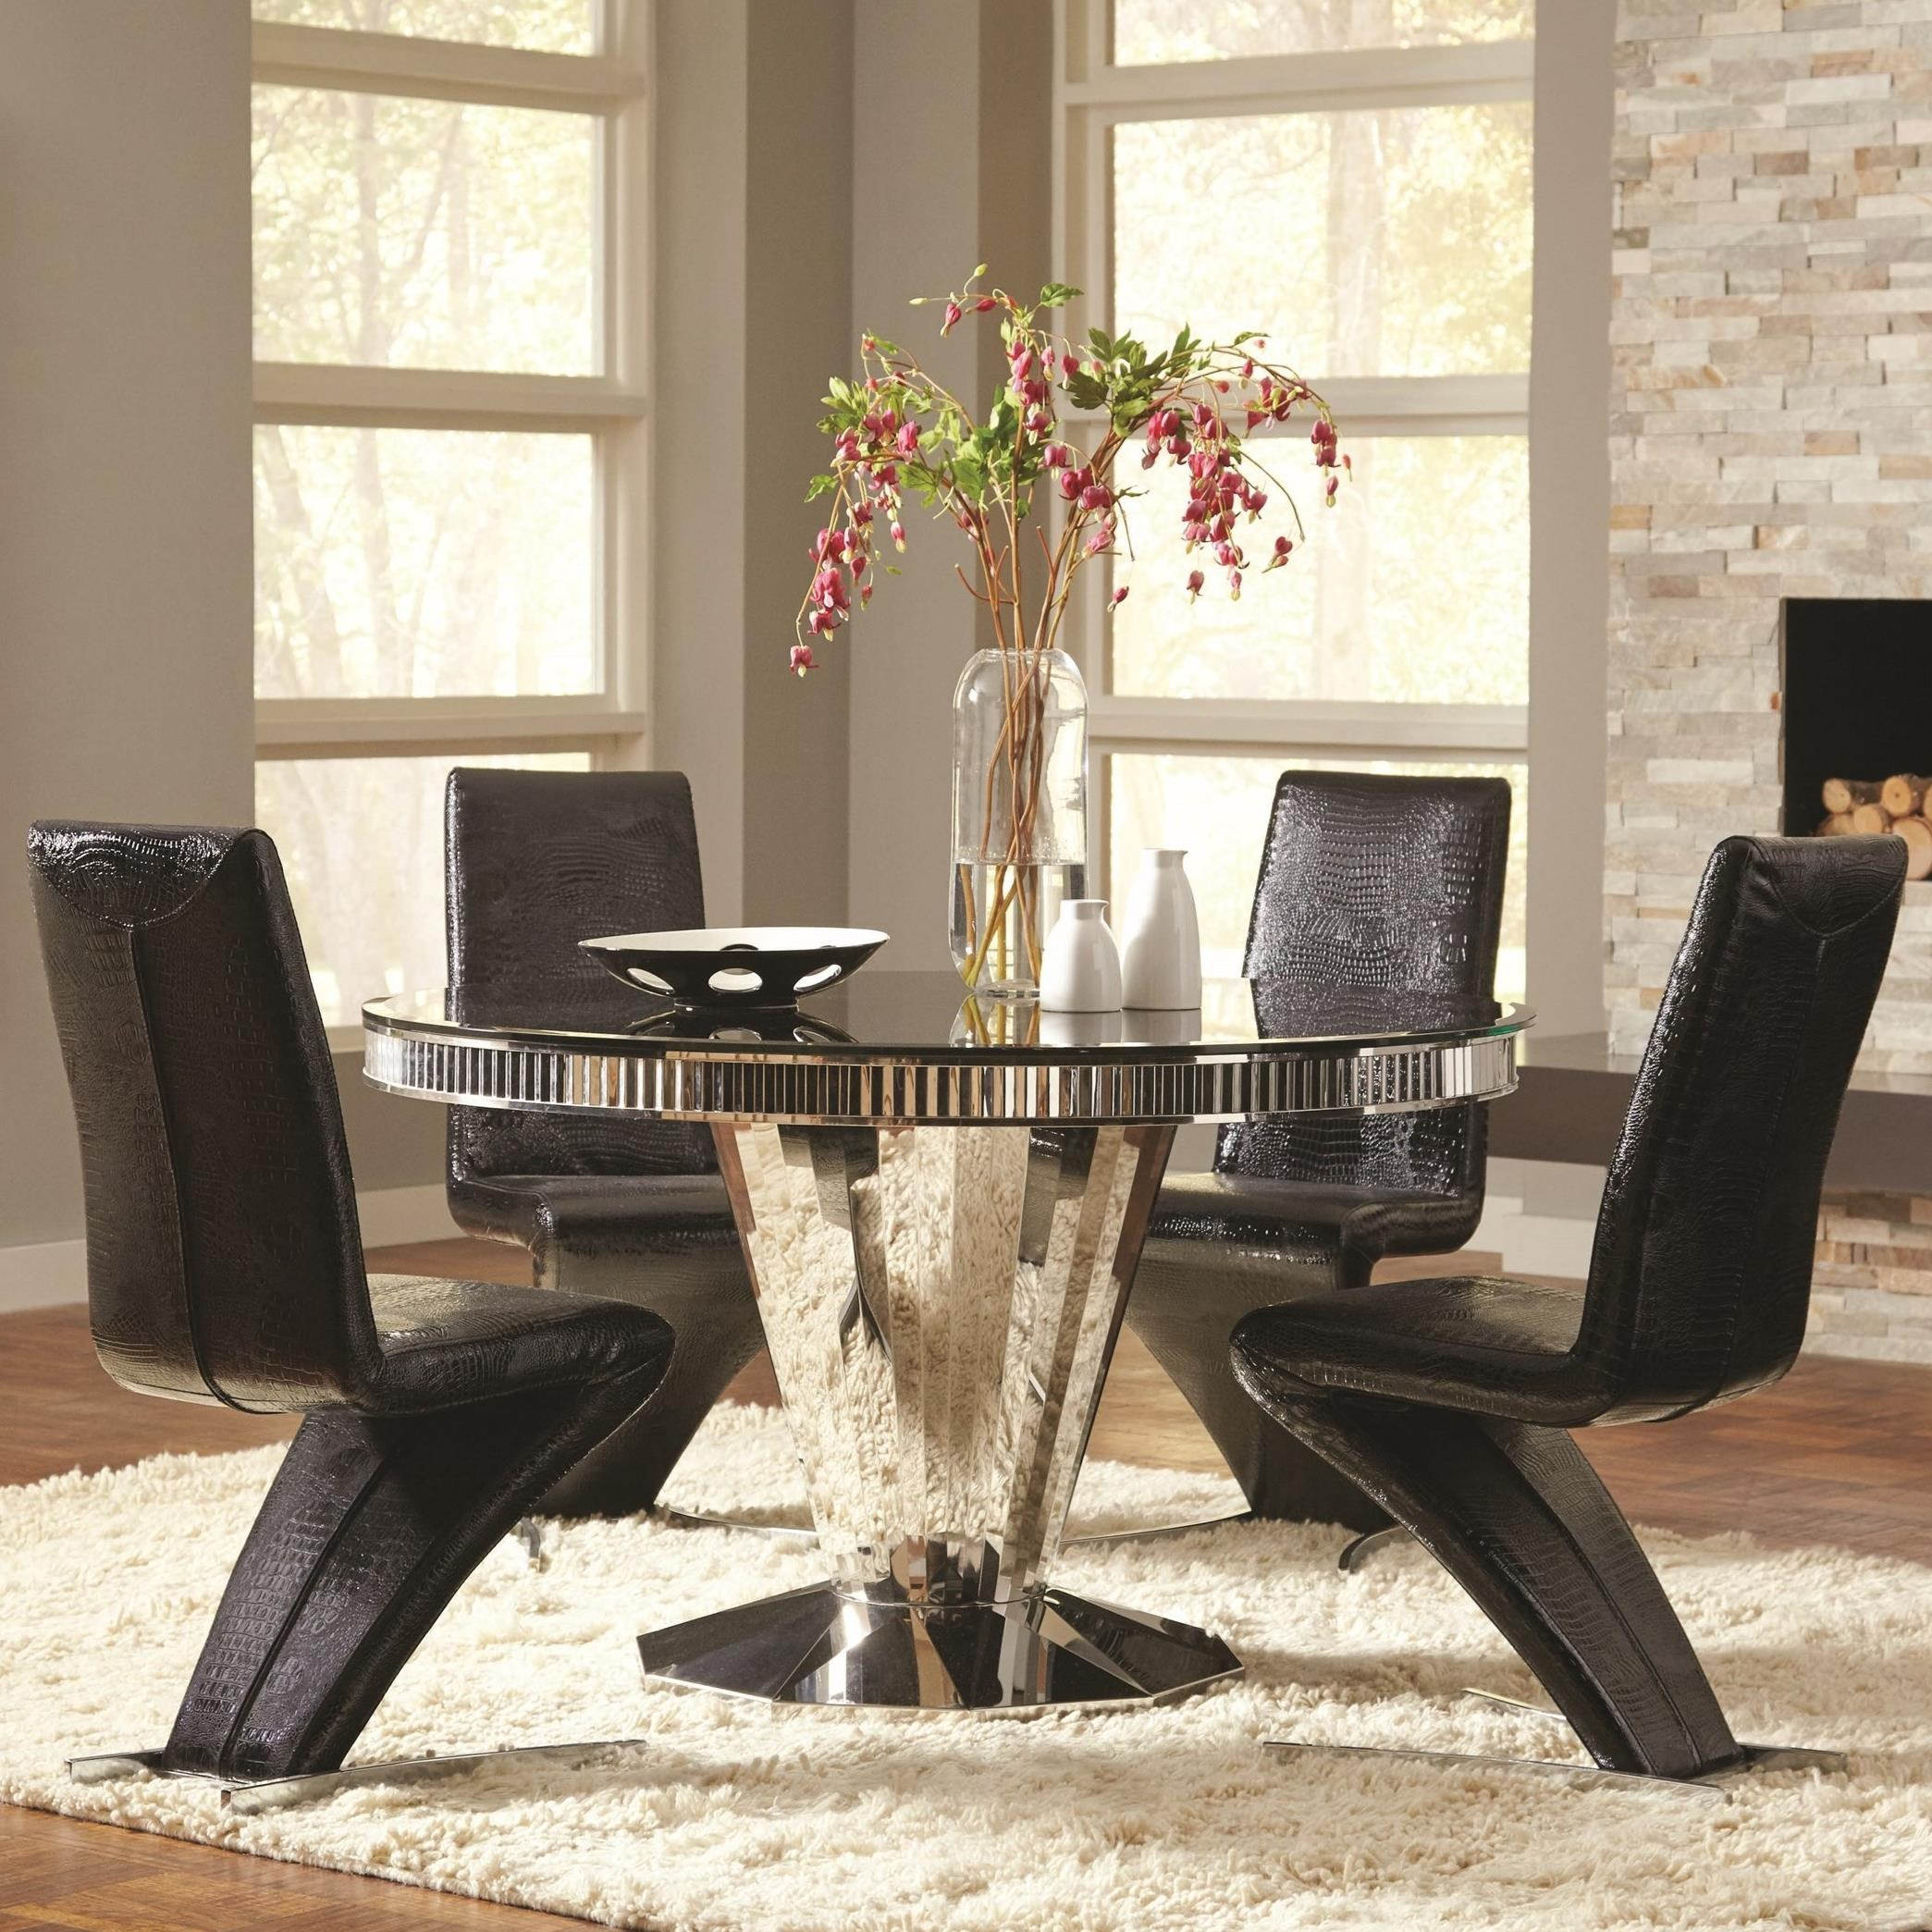 Barzini 5 Piece Table and Chair Set by Coaster at Rife's Home Furniture